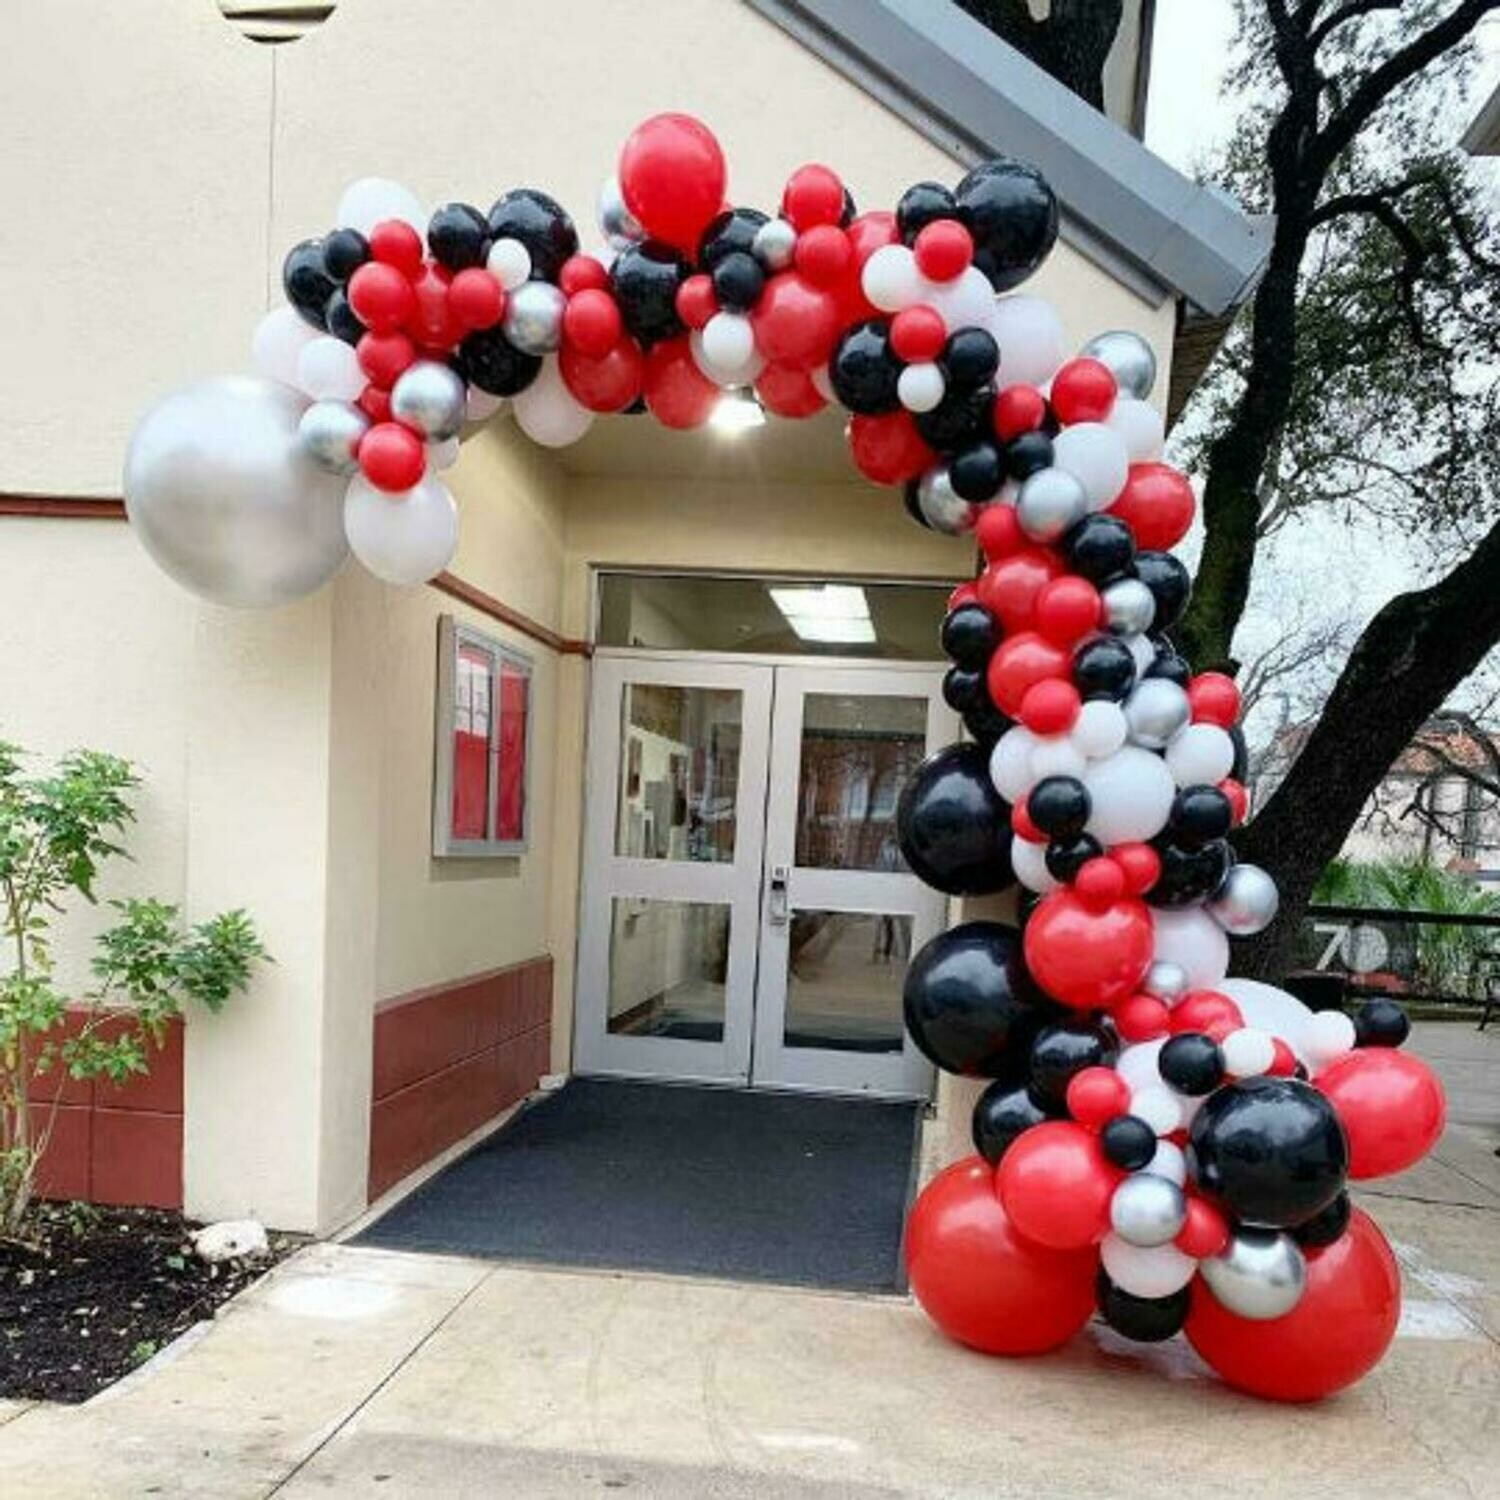 161 pcs DIY Red Black Balloon Garland Arch Kit Sliver White Balloon for Birthday Baby Shower Weddings Party Decoration